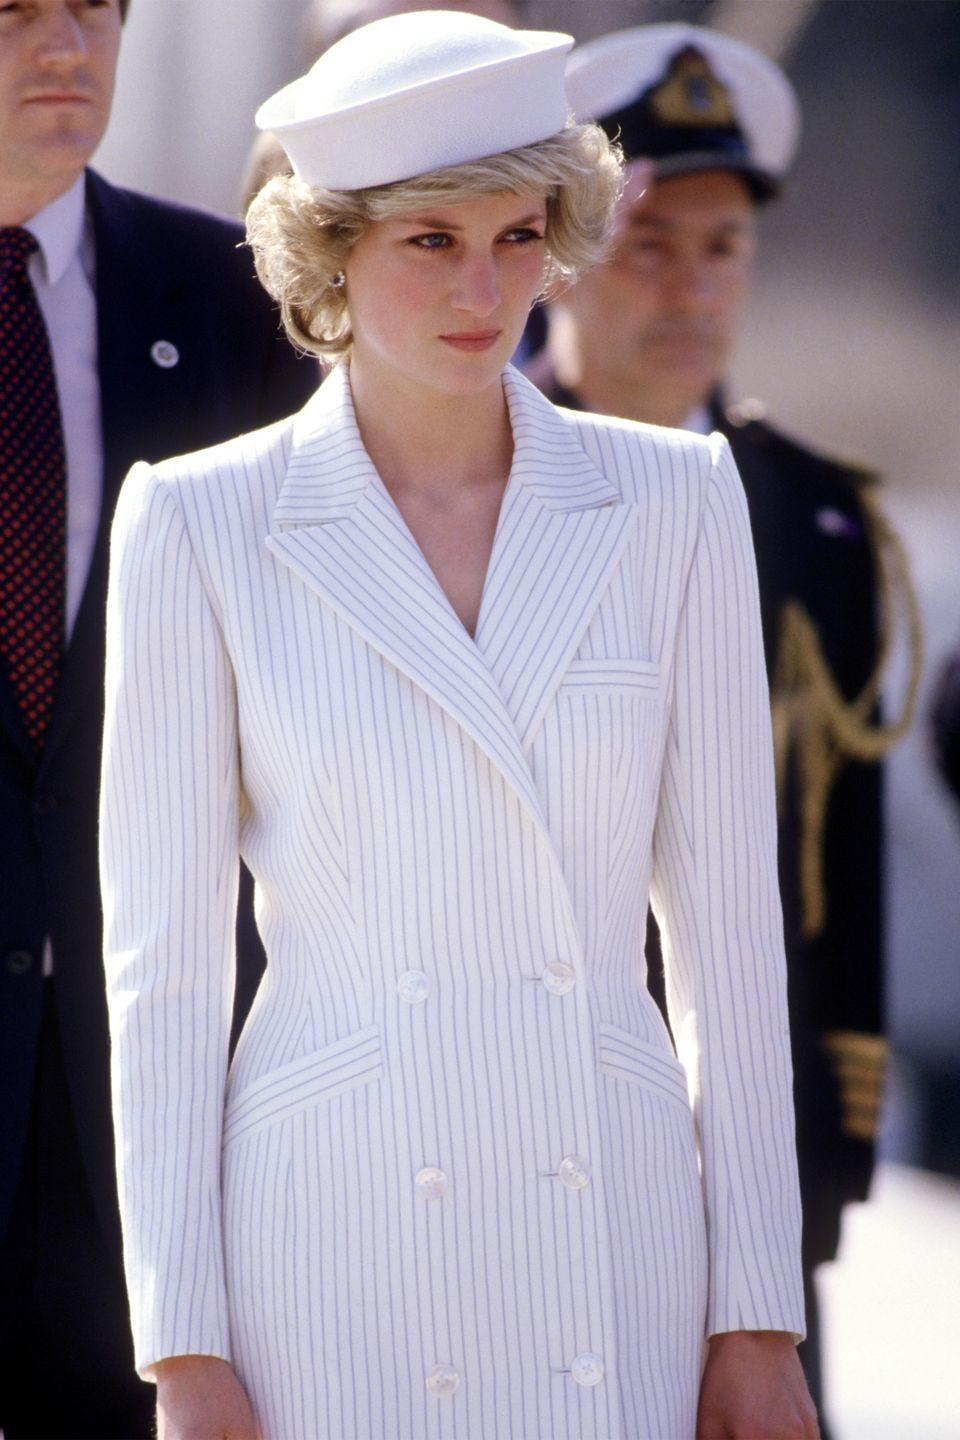 <p>In a dress by Catherine Walker and hat by Kangol arriving at a naval base in La Spezia during a royal tour of Italy.</p>